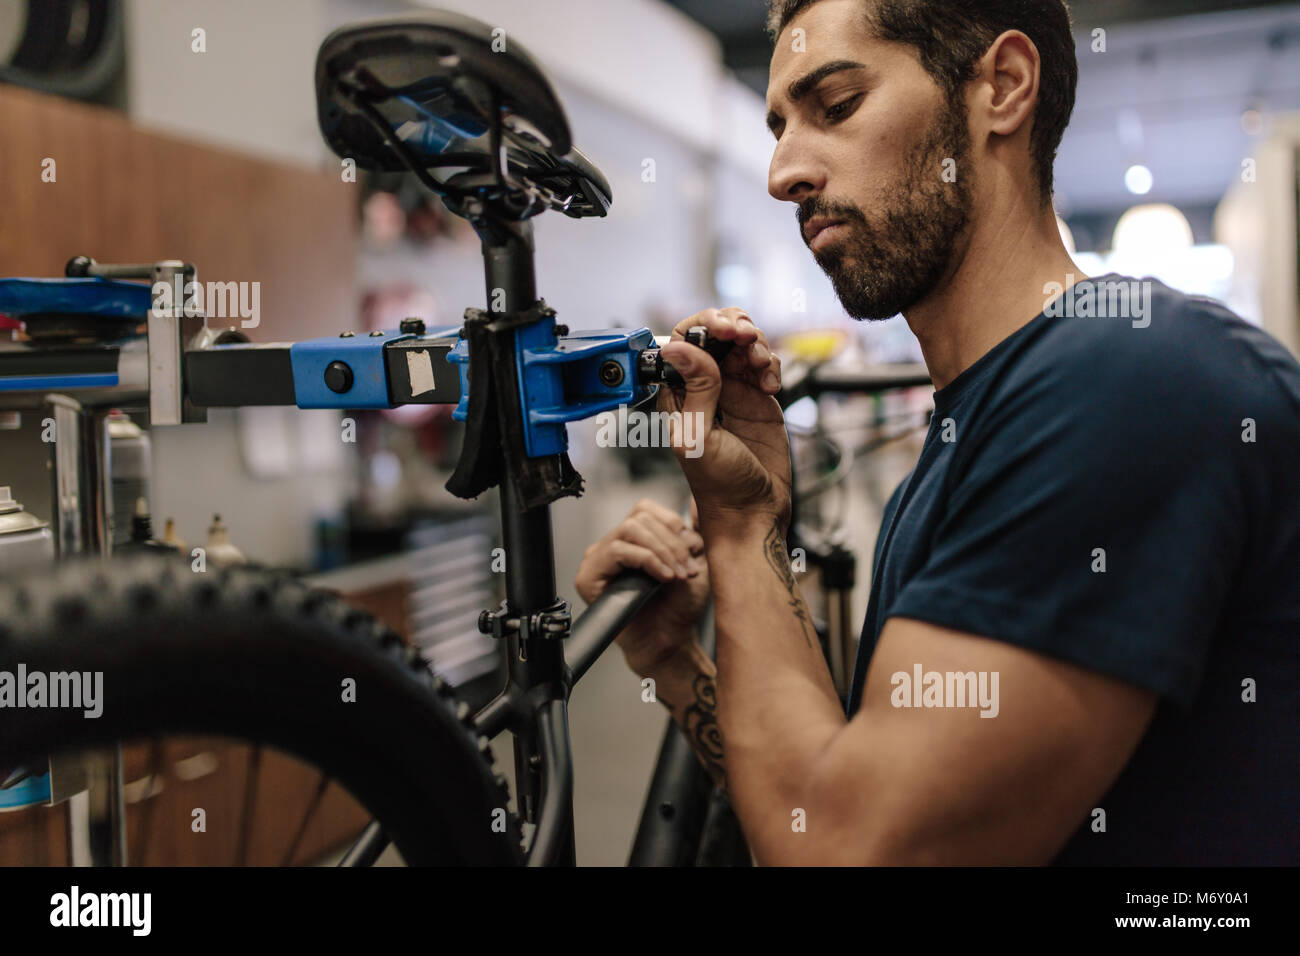 Worker repairing a bicycle at workshop. Man fixing a bicycle to a holding stand in a repair shop. - Stock Image